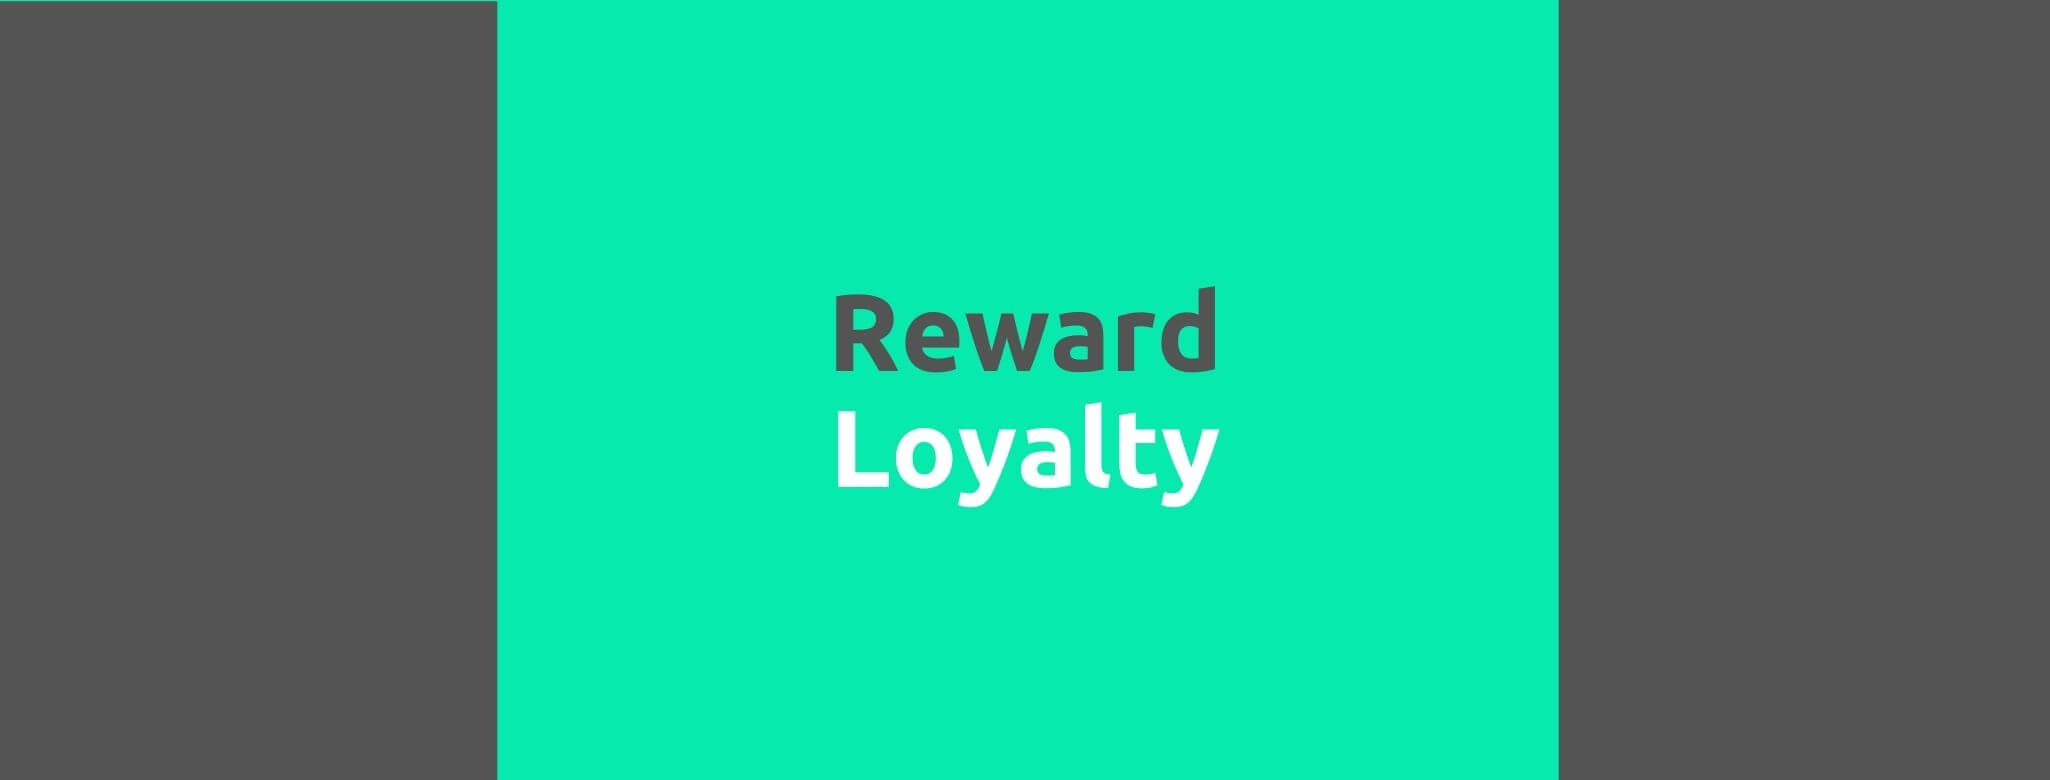 Reward Loyalty - 35 Things Every Seller Should Do to Offer Great Customer Service - Replyco Helpdesk Software for eCommerce